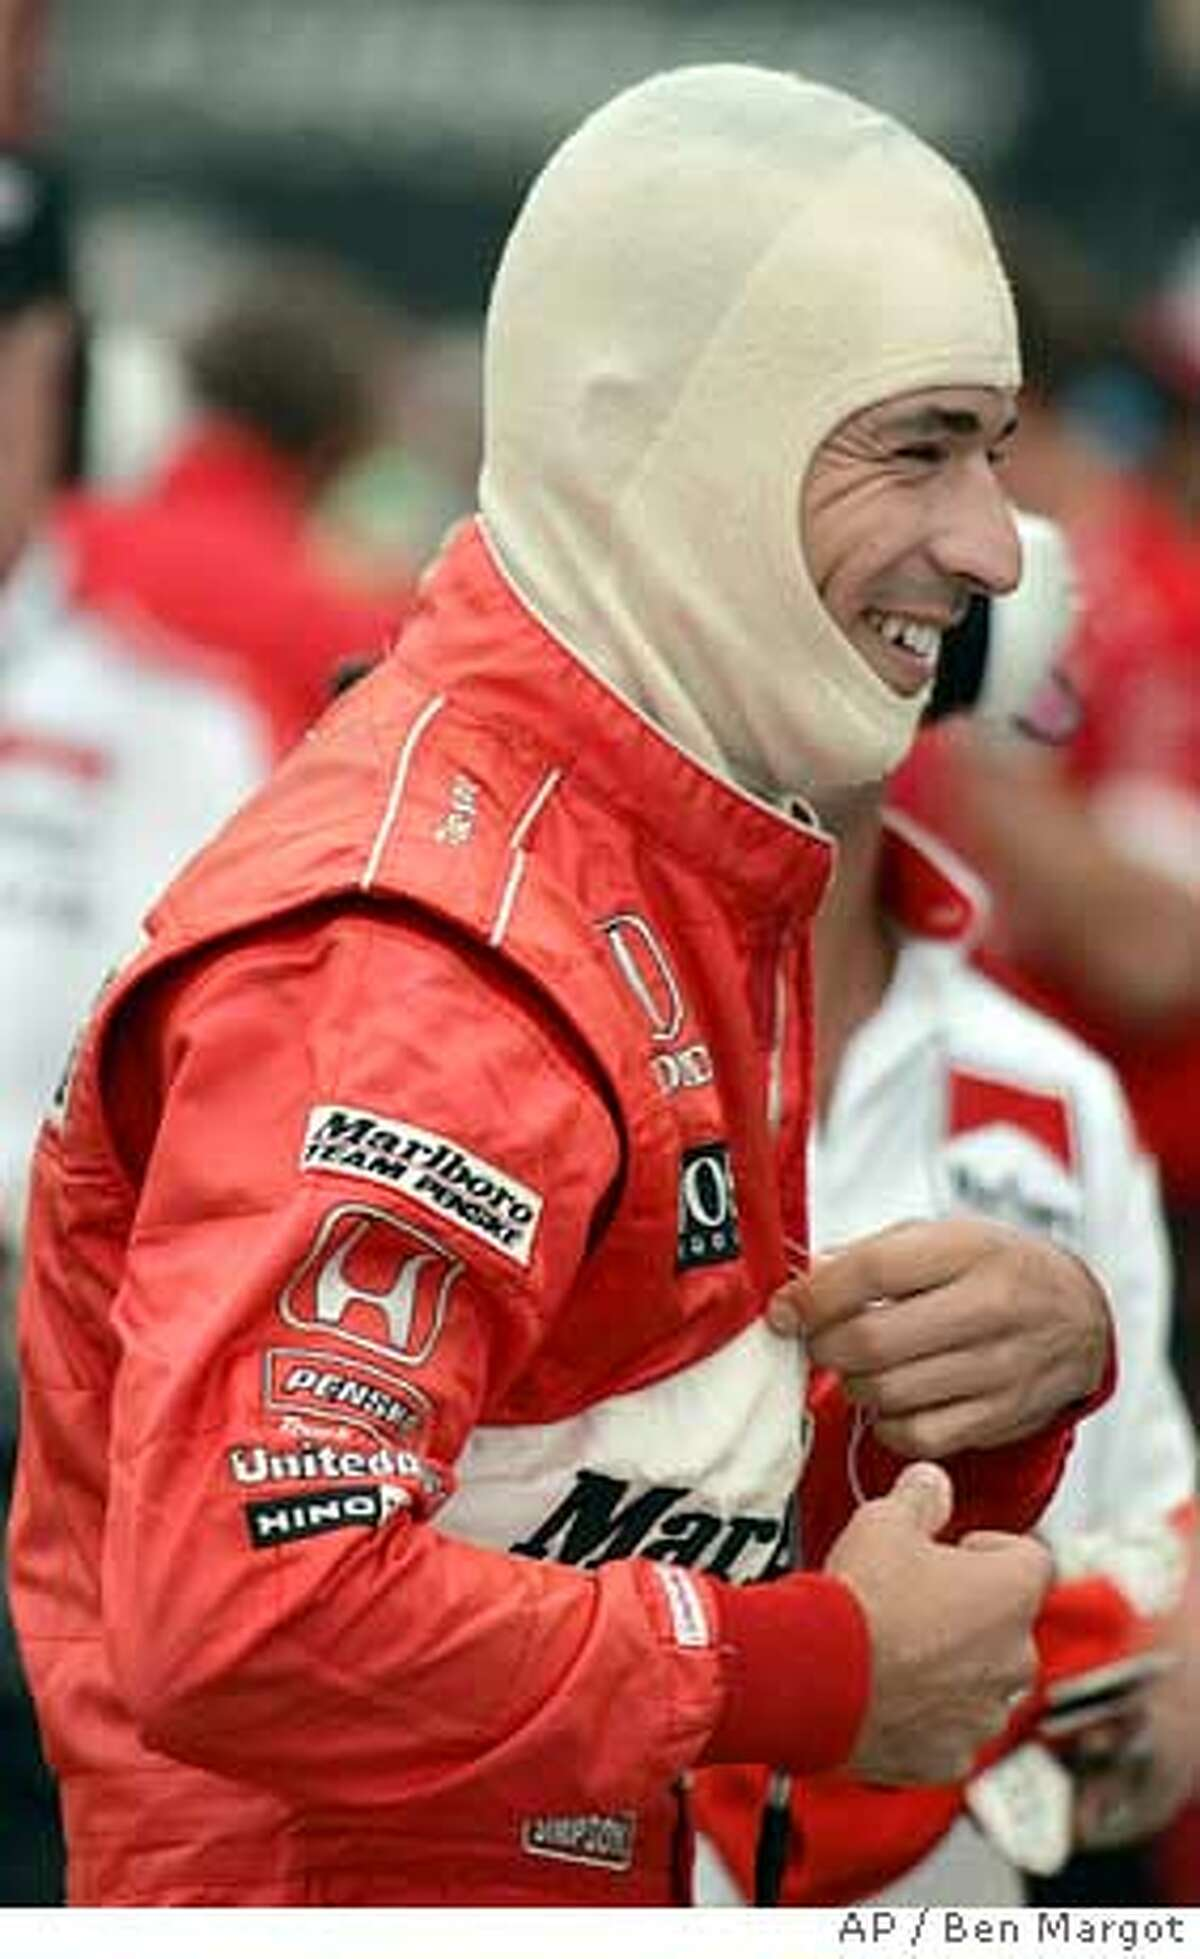 IRL driver Helio Castroneves of Brazil, smiles prior to taking practice laps for the Indy Grand Prix of Sonoma Friday, Aug. 25, 2006, at Infineon Raceway in Sonoma, Calif. (AP Photo/Ben Margot)